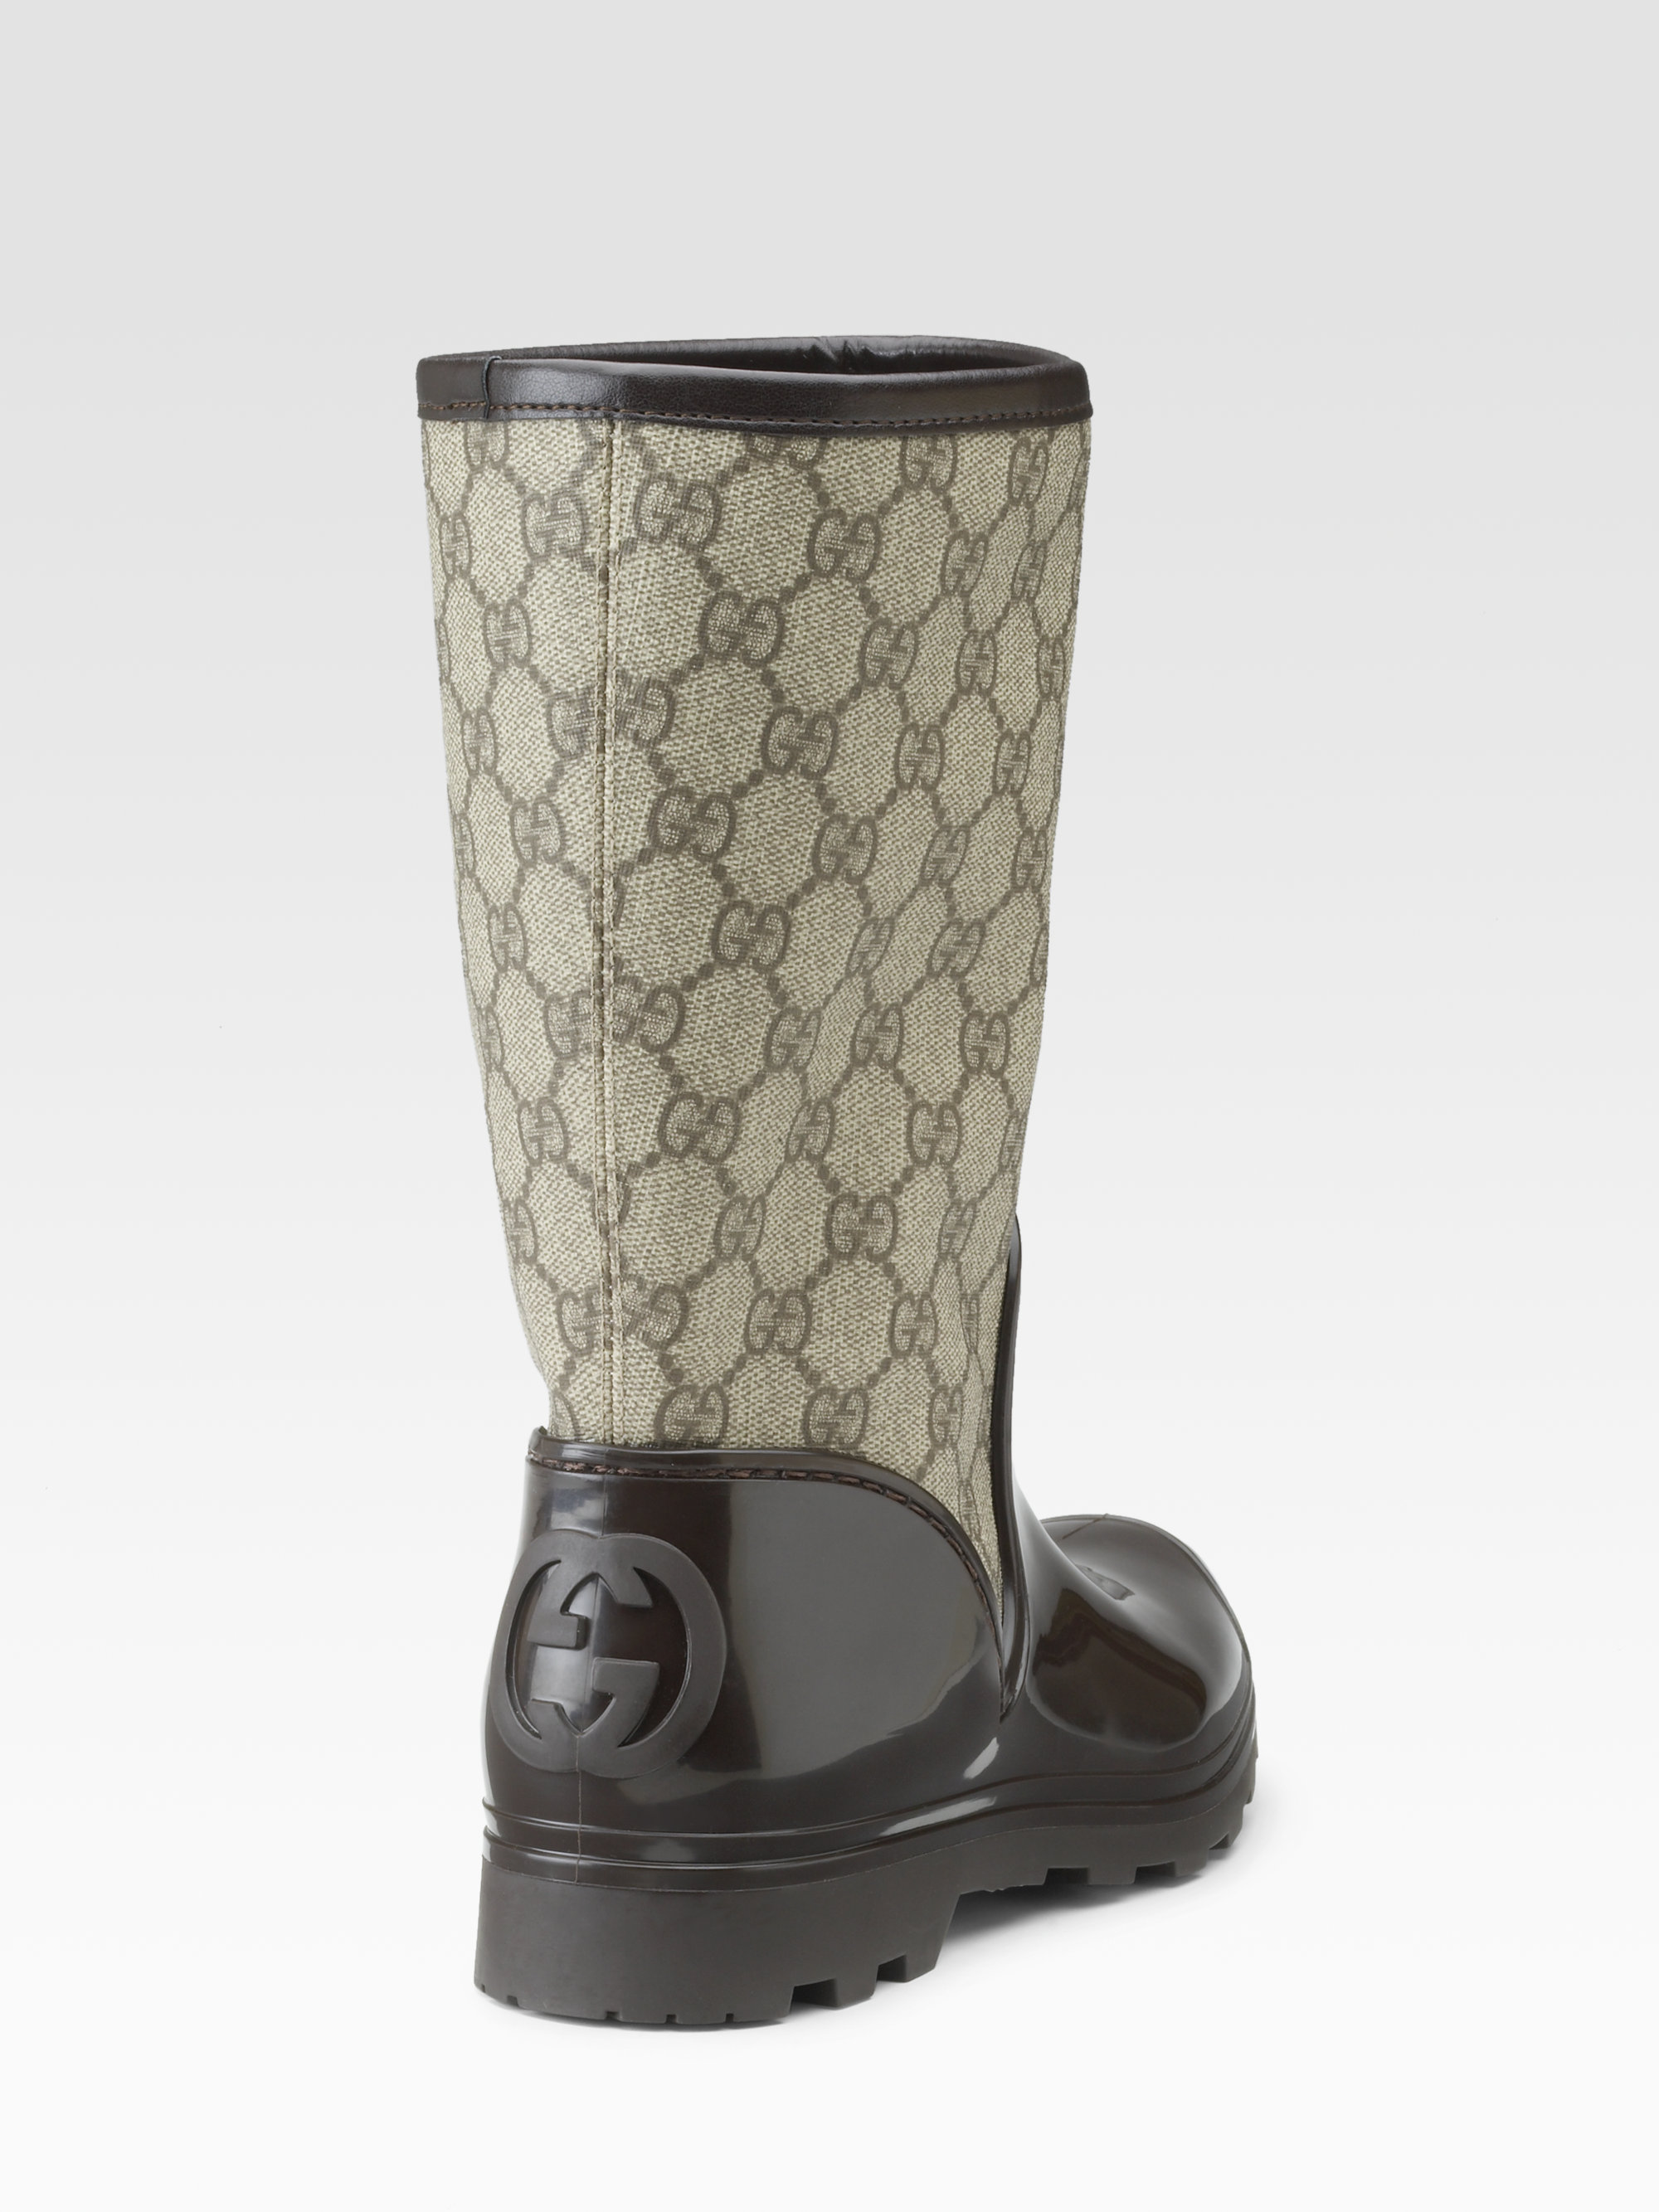 Gucci Prato Flat Rainboots in Brown | Lyst